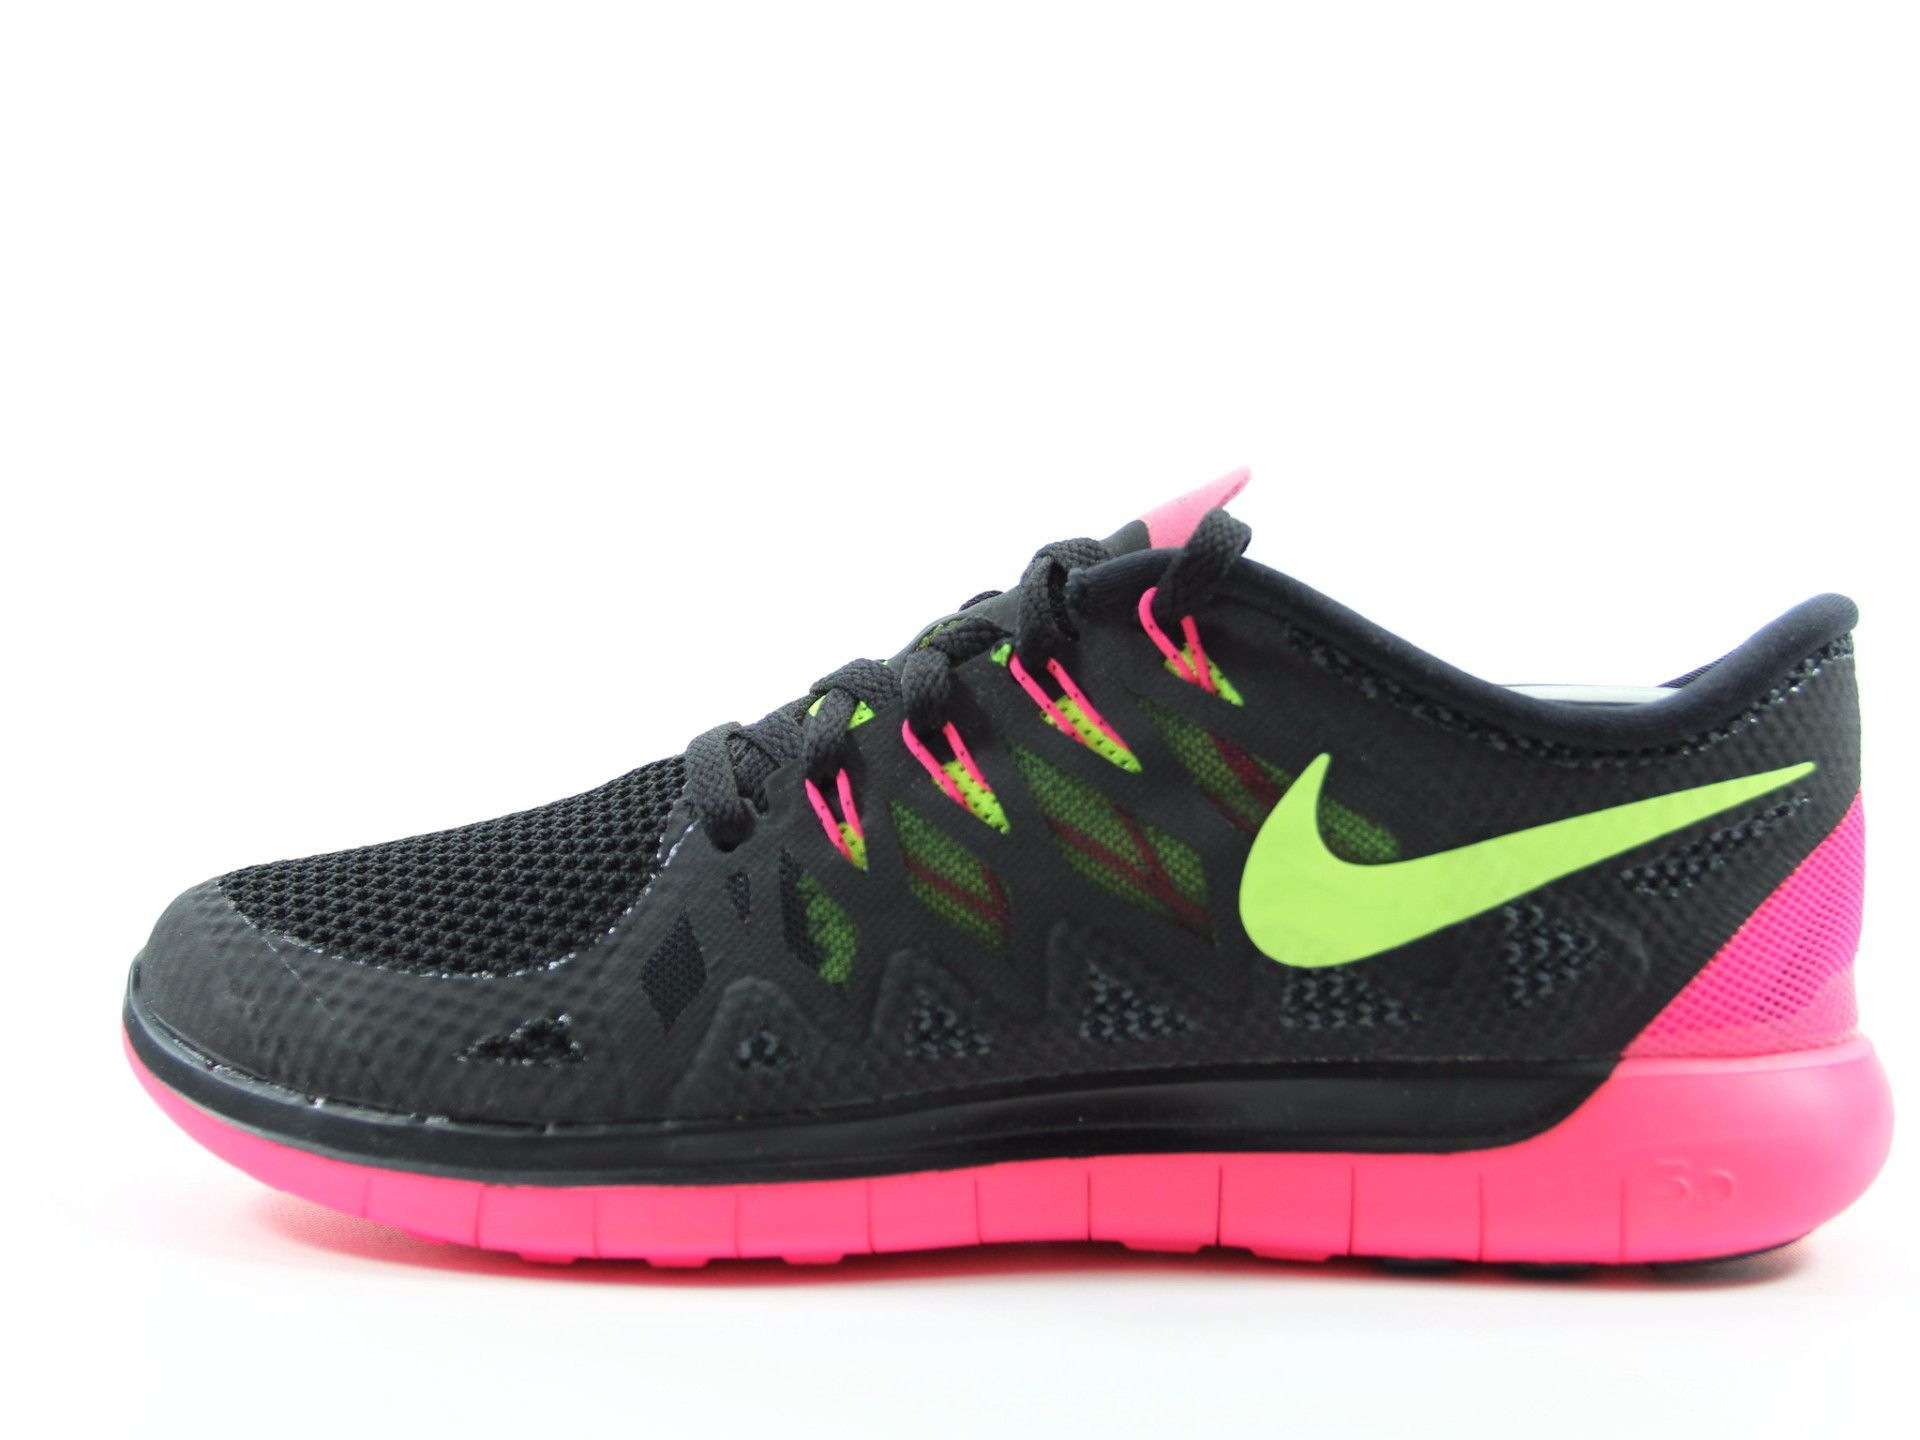 ** Nike Free 5.0 Lightweight Running Shoes Women's Size 9 Black